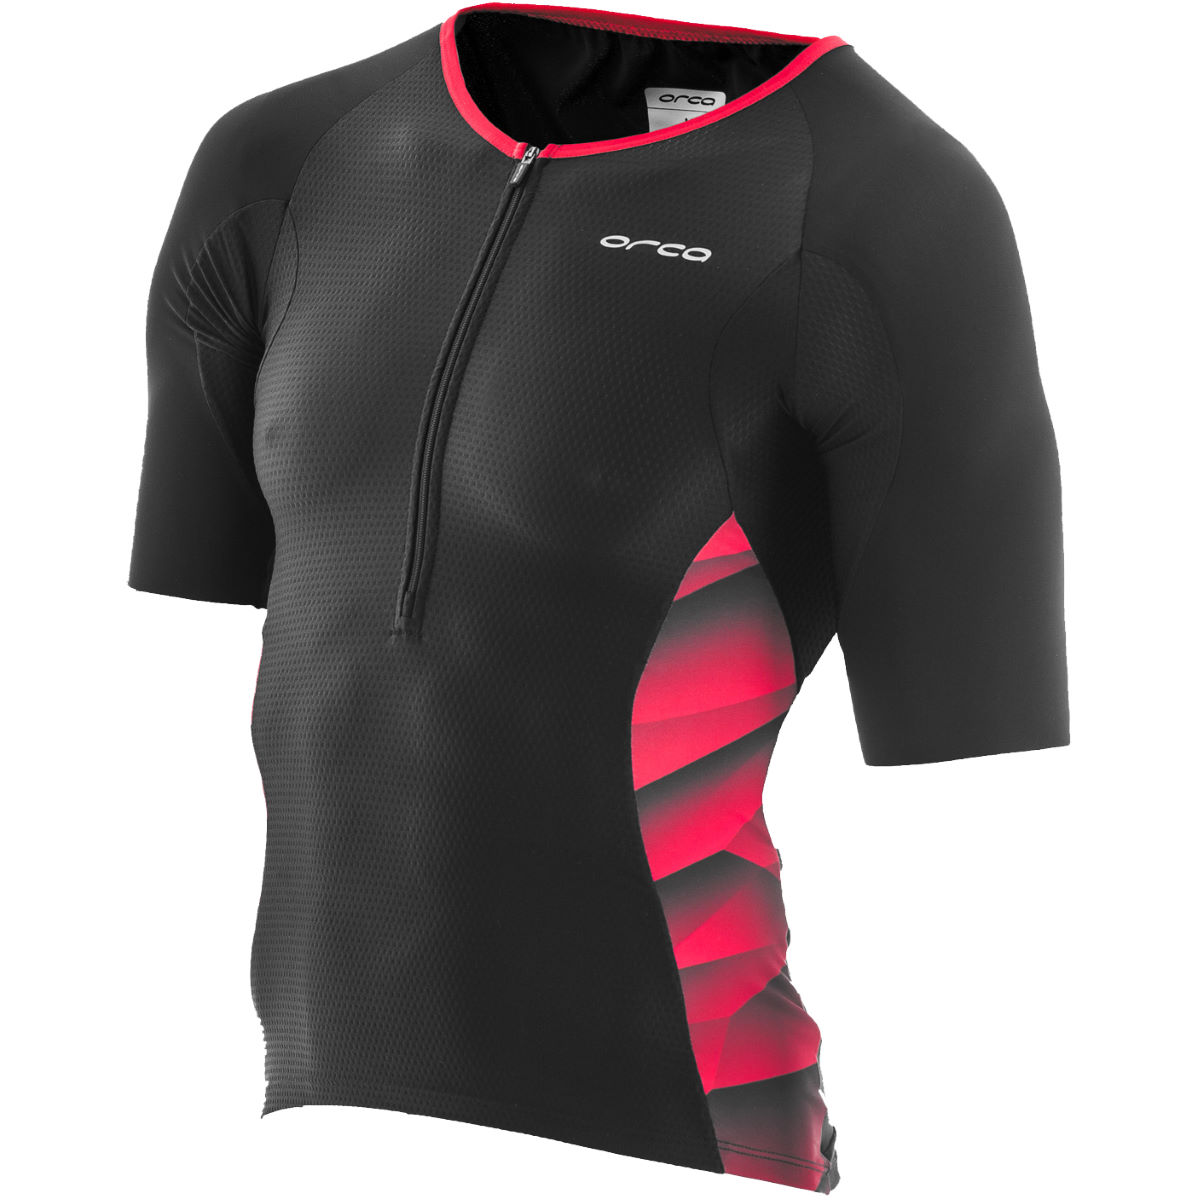 Maillot de triathlon Orca 226 - Extra Small Black/Poinsettia